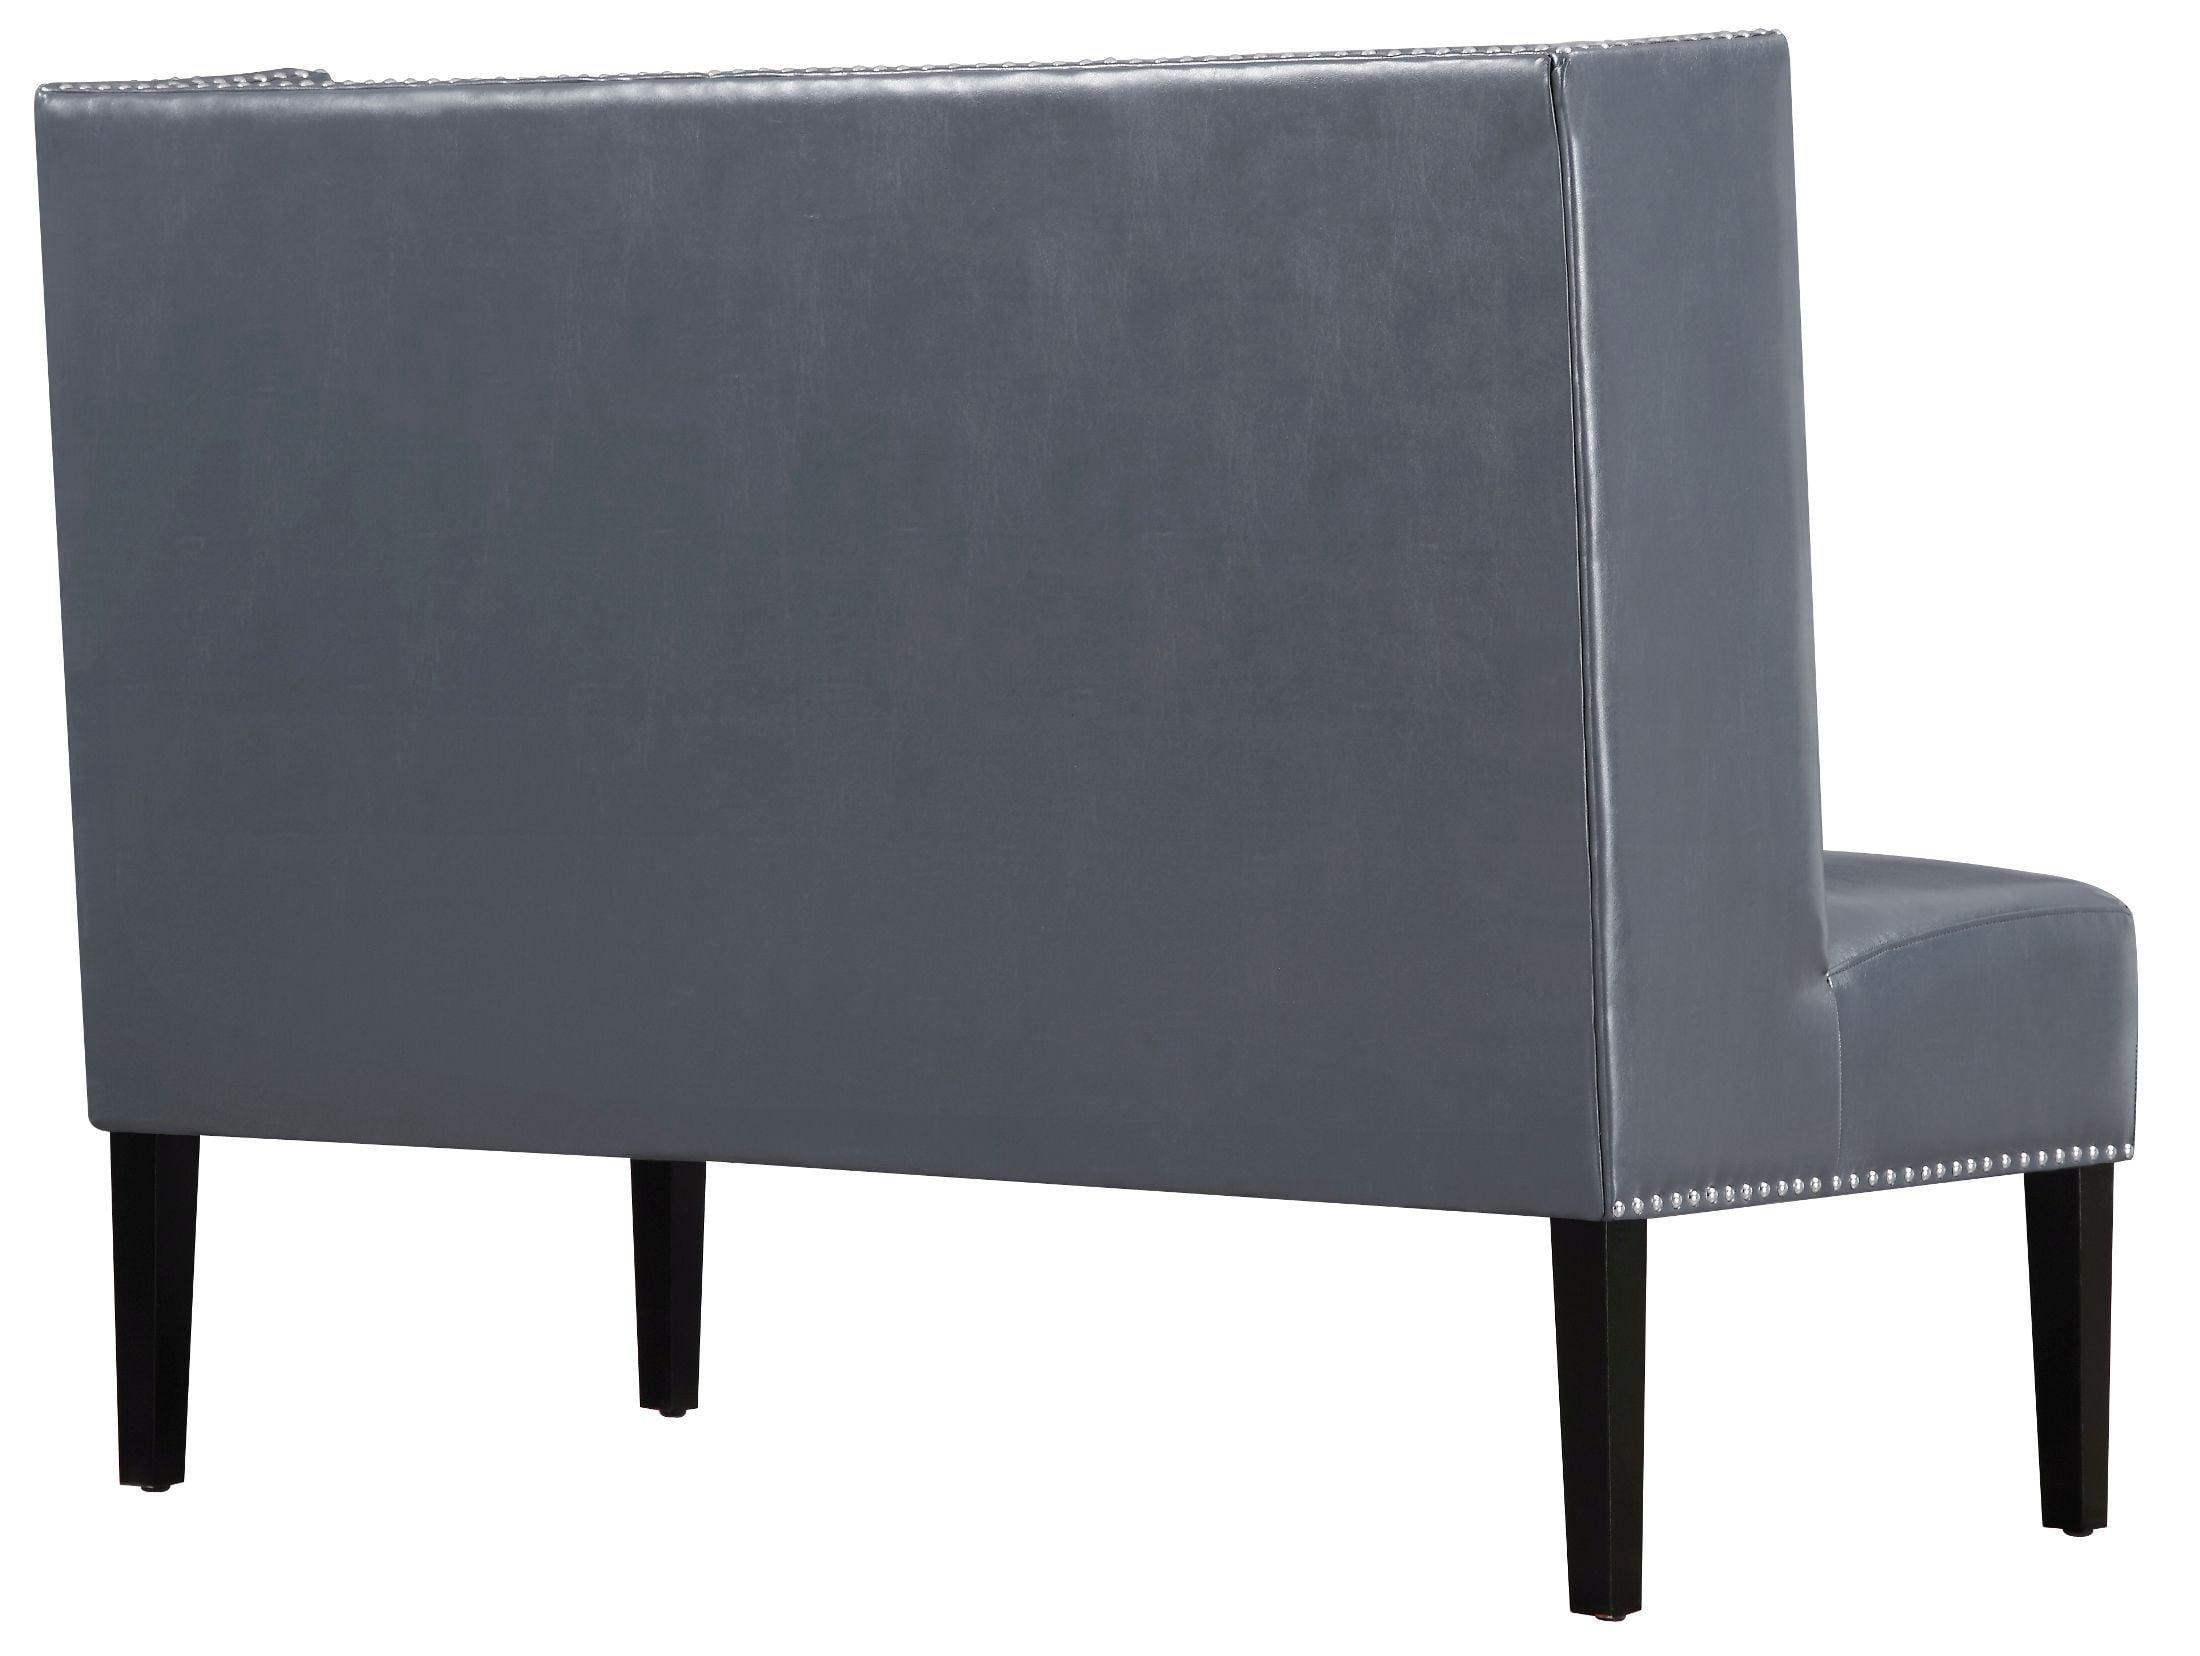 Halifax Gray Leather Banquette Bench From Tov Coleman